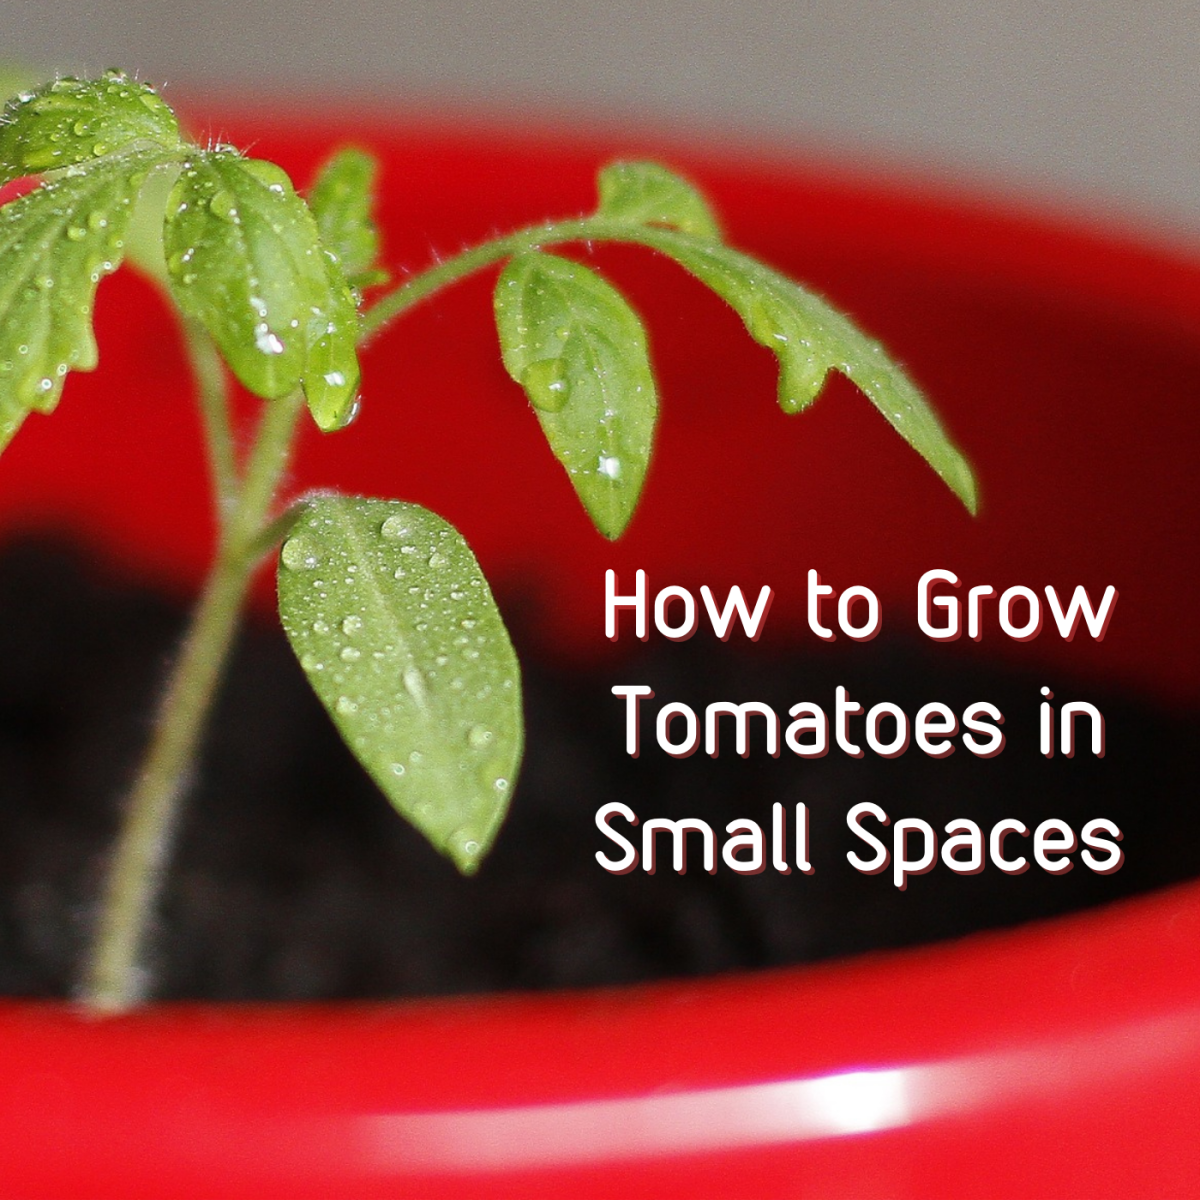 Not much room for a garden in your home? Even tomatoes can flourish in small spaces!